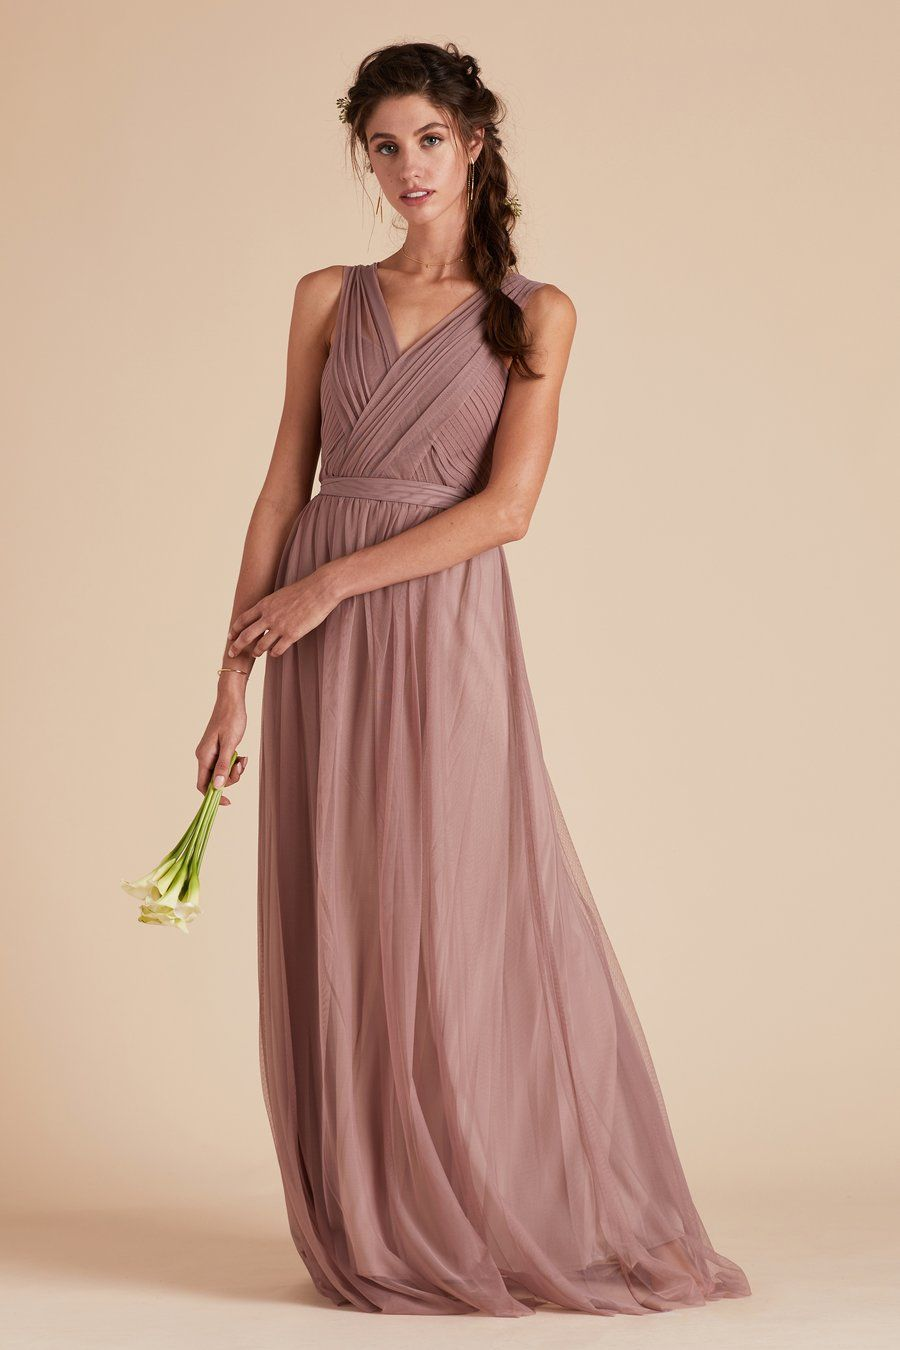 Cece wedding dress  Cece Convertible Tulle Bridesmaid Dress in Mauve V neck strap by